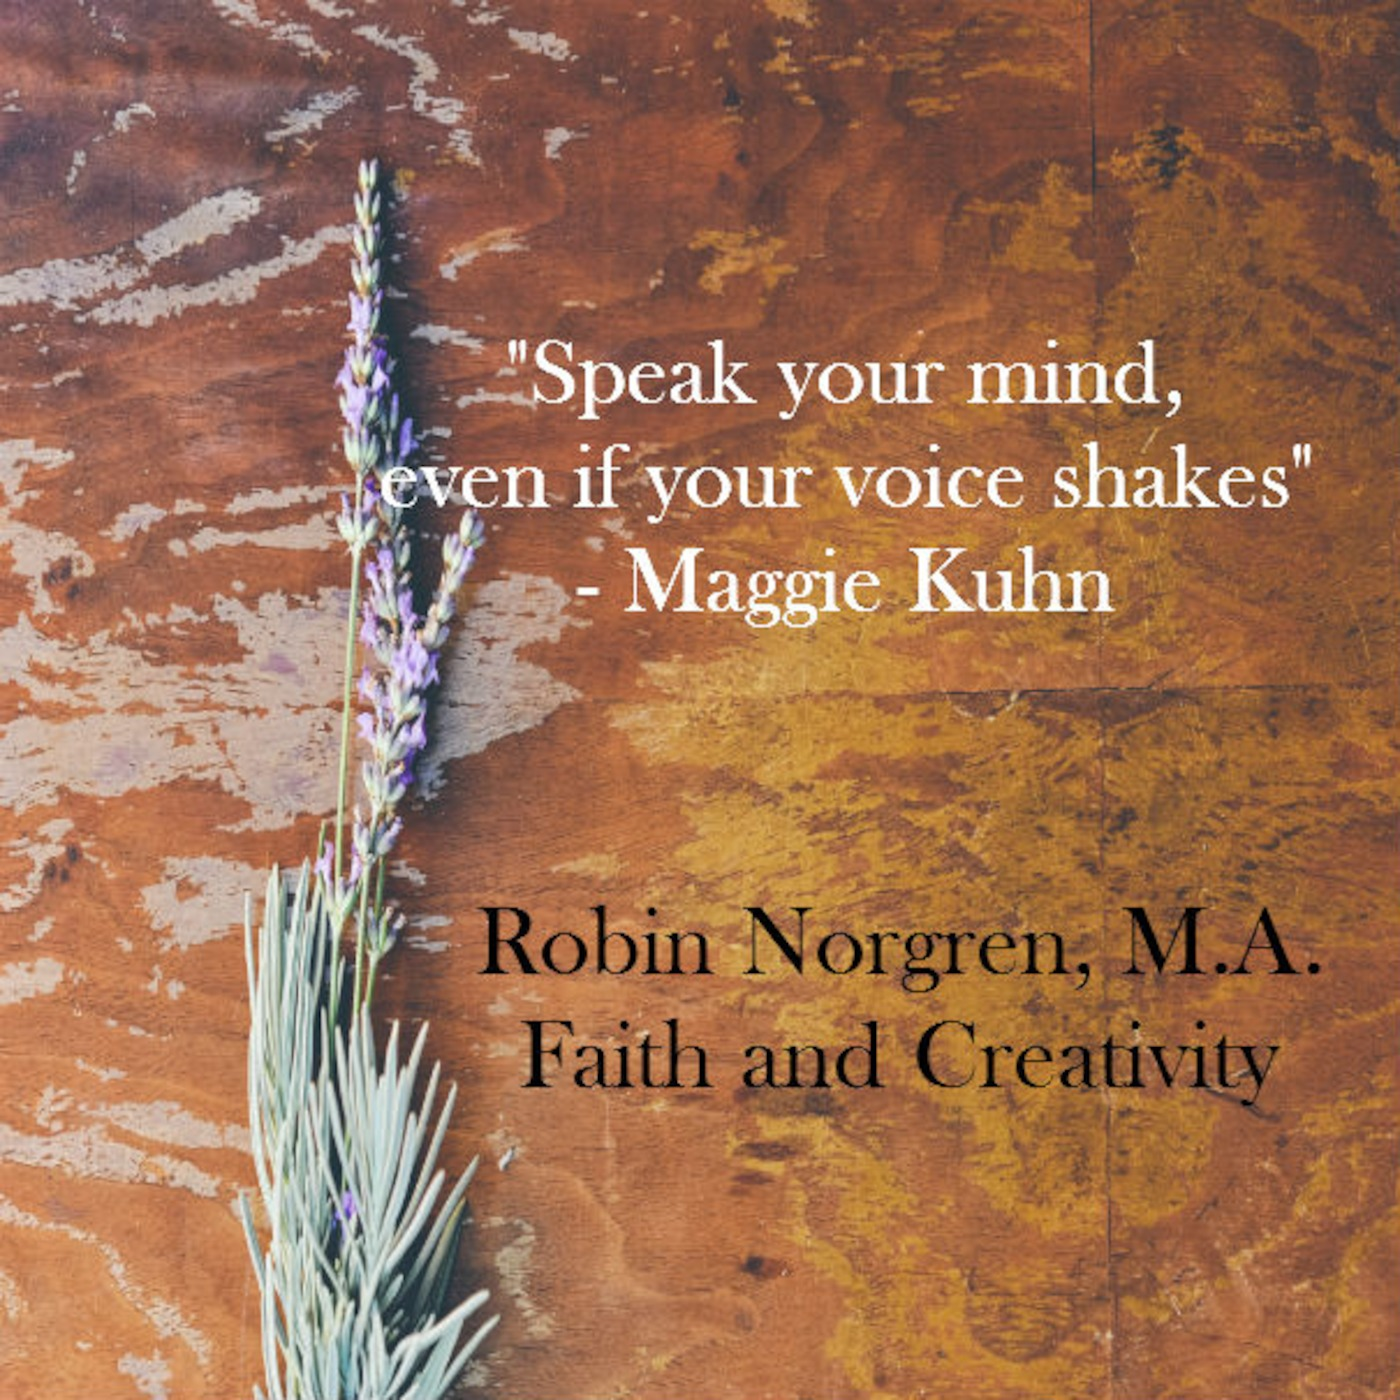 Robin Norgren Studios - Faith and Creativity